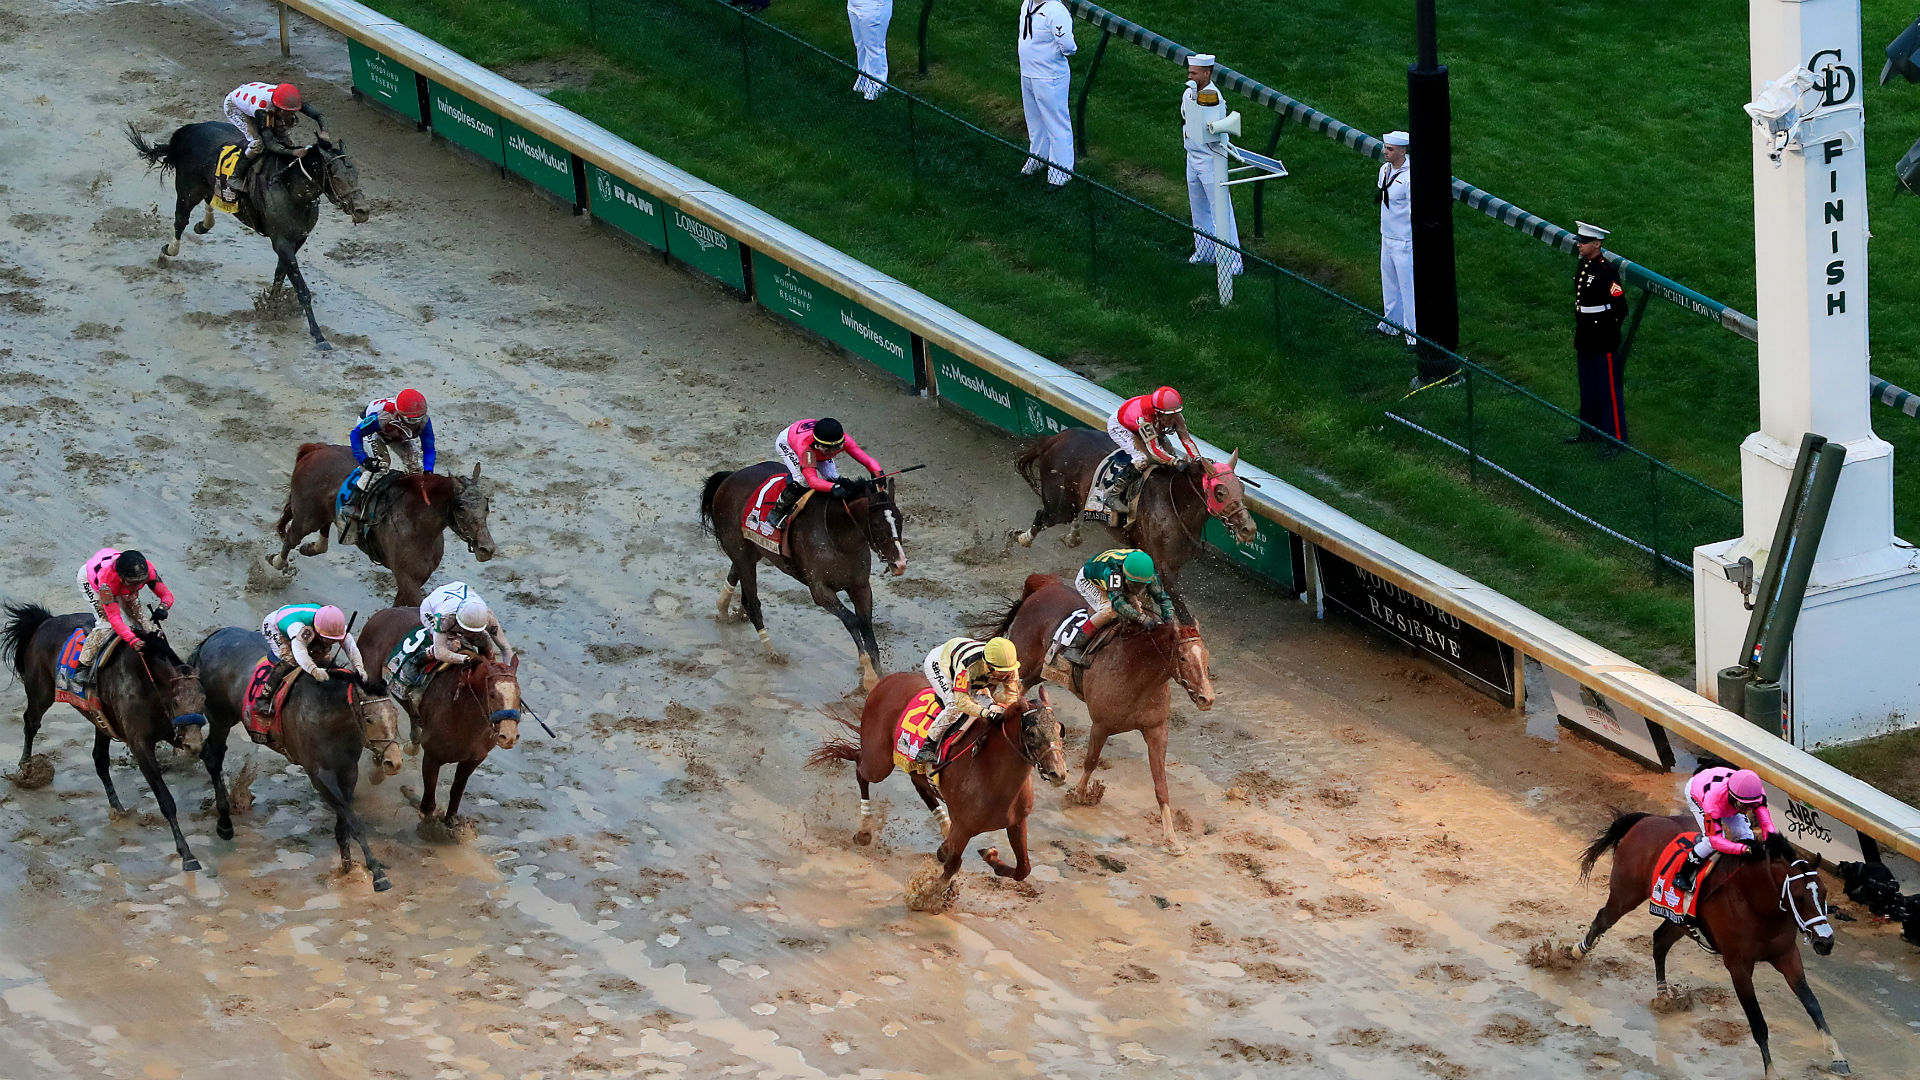 Saints react to controversial Kentucky Derby result with ironic social media post